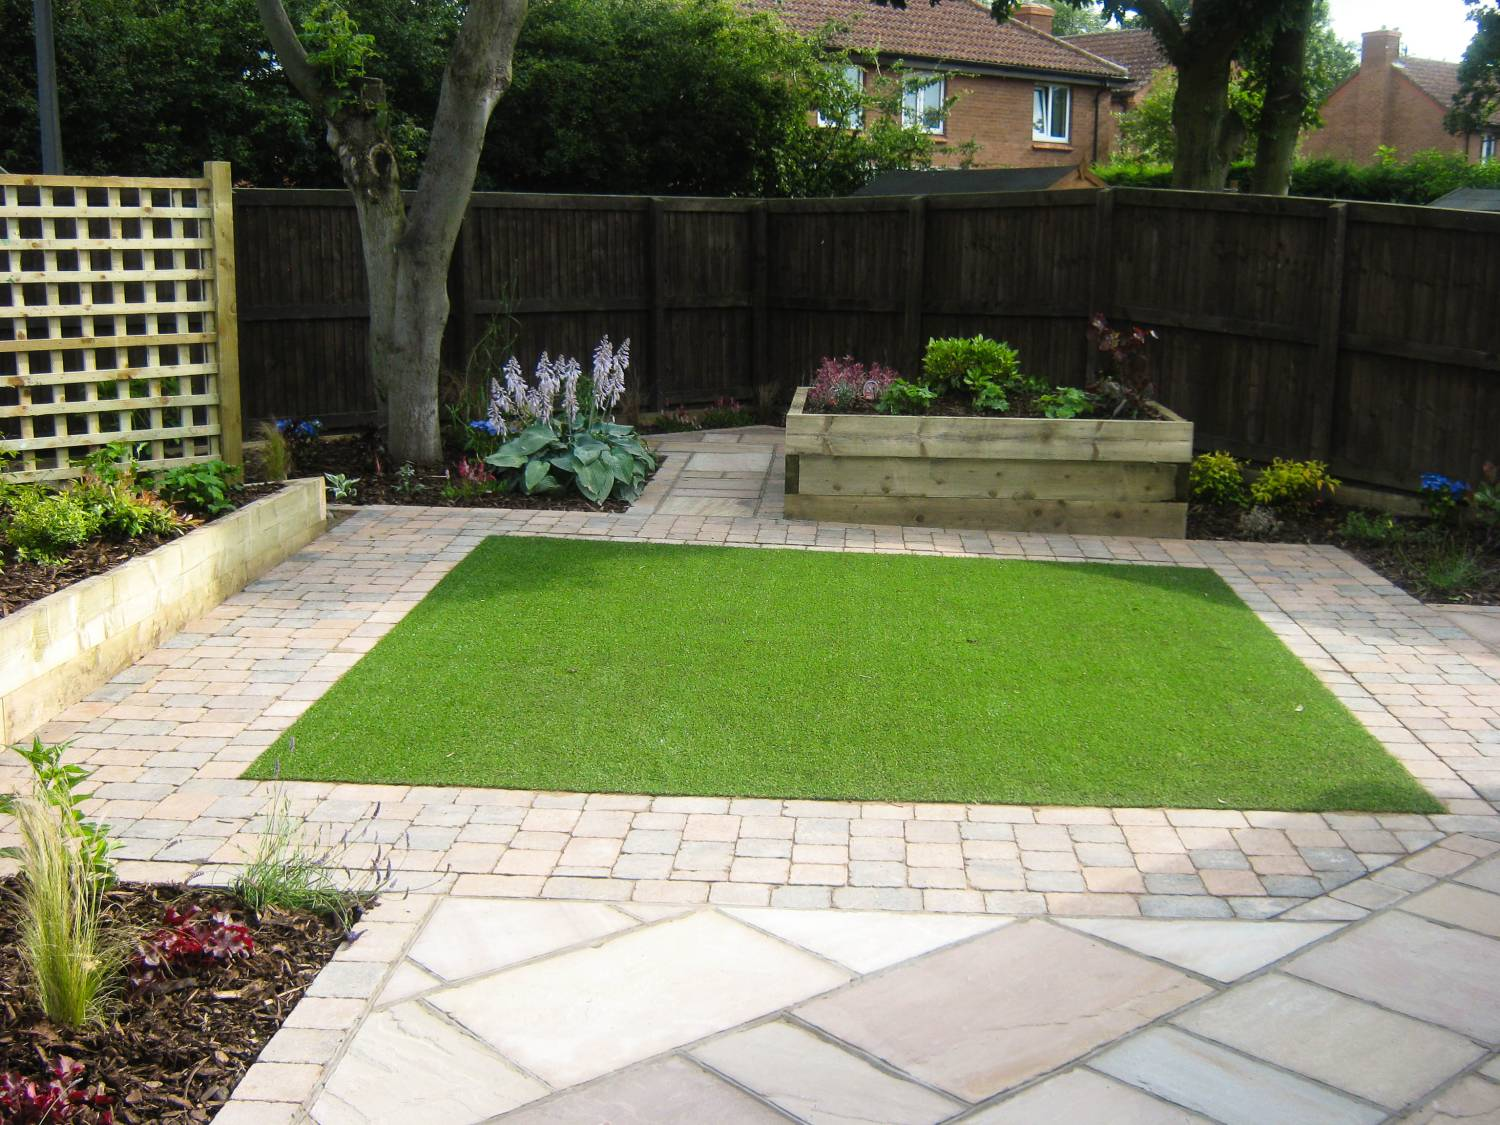 Turfing service in york yorskapes for Garden design york uk